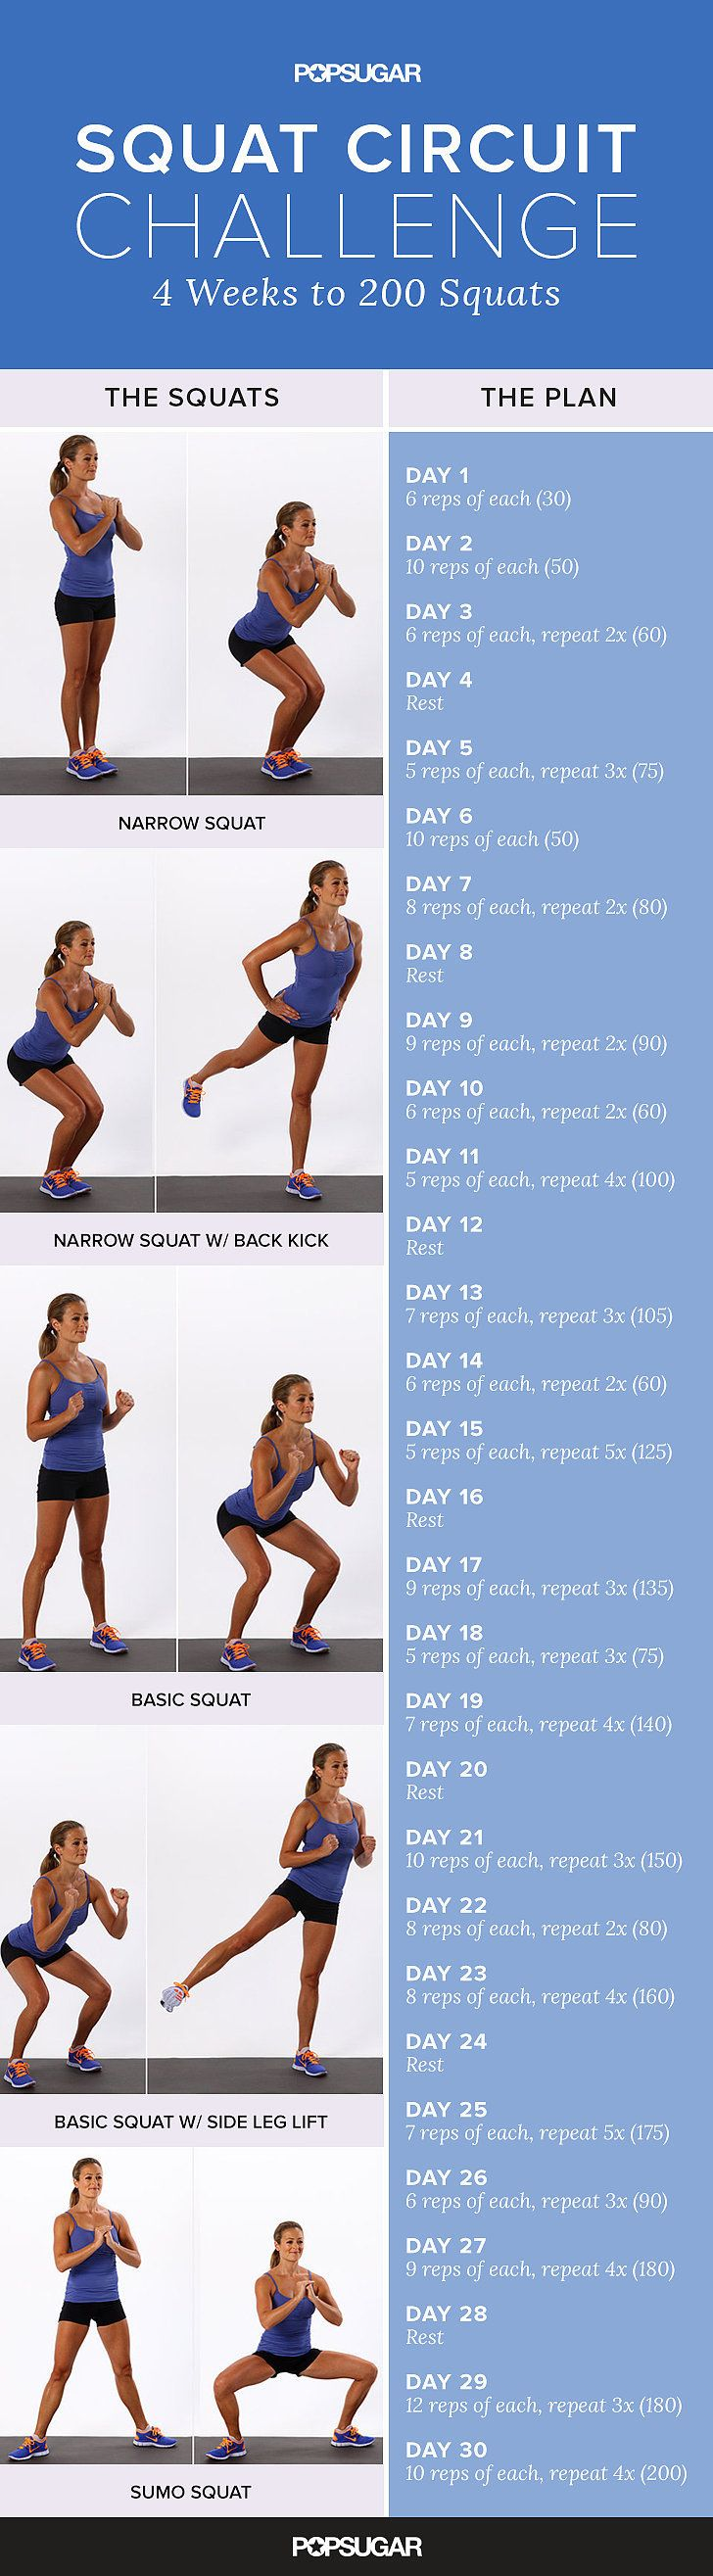 Give your butt some attention and try our four-week squat challenge! Learn the specifics on each style of squat included in this circuit, then put your knowledge to practice with this plan.